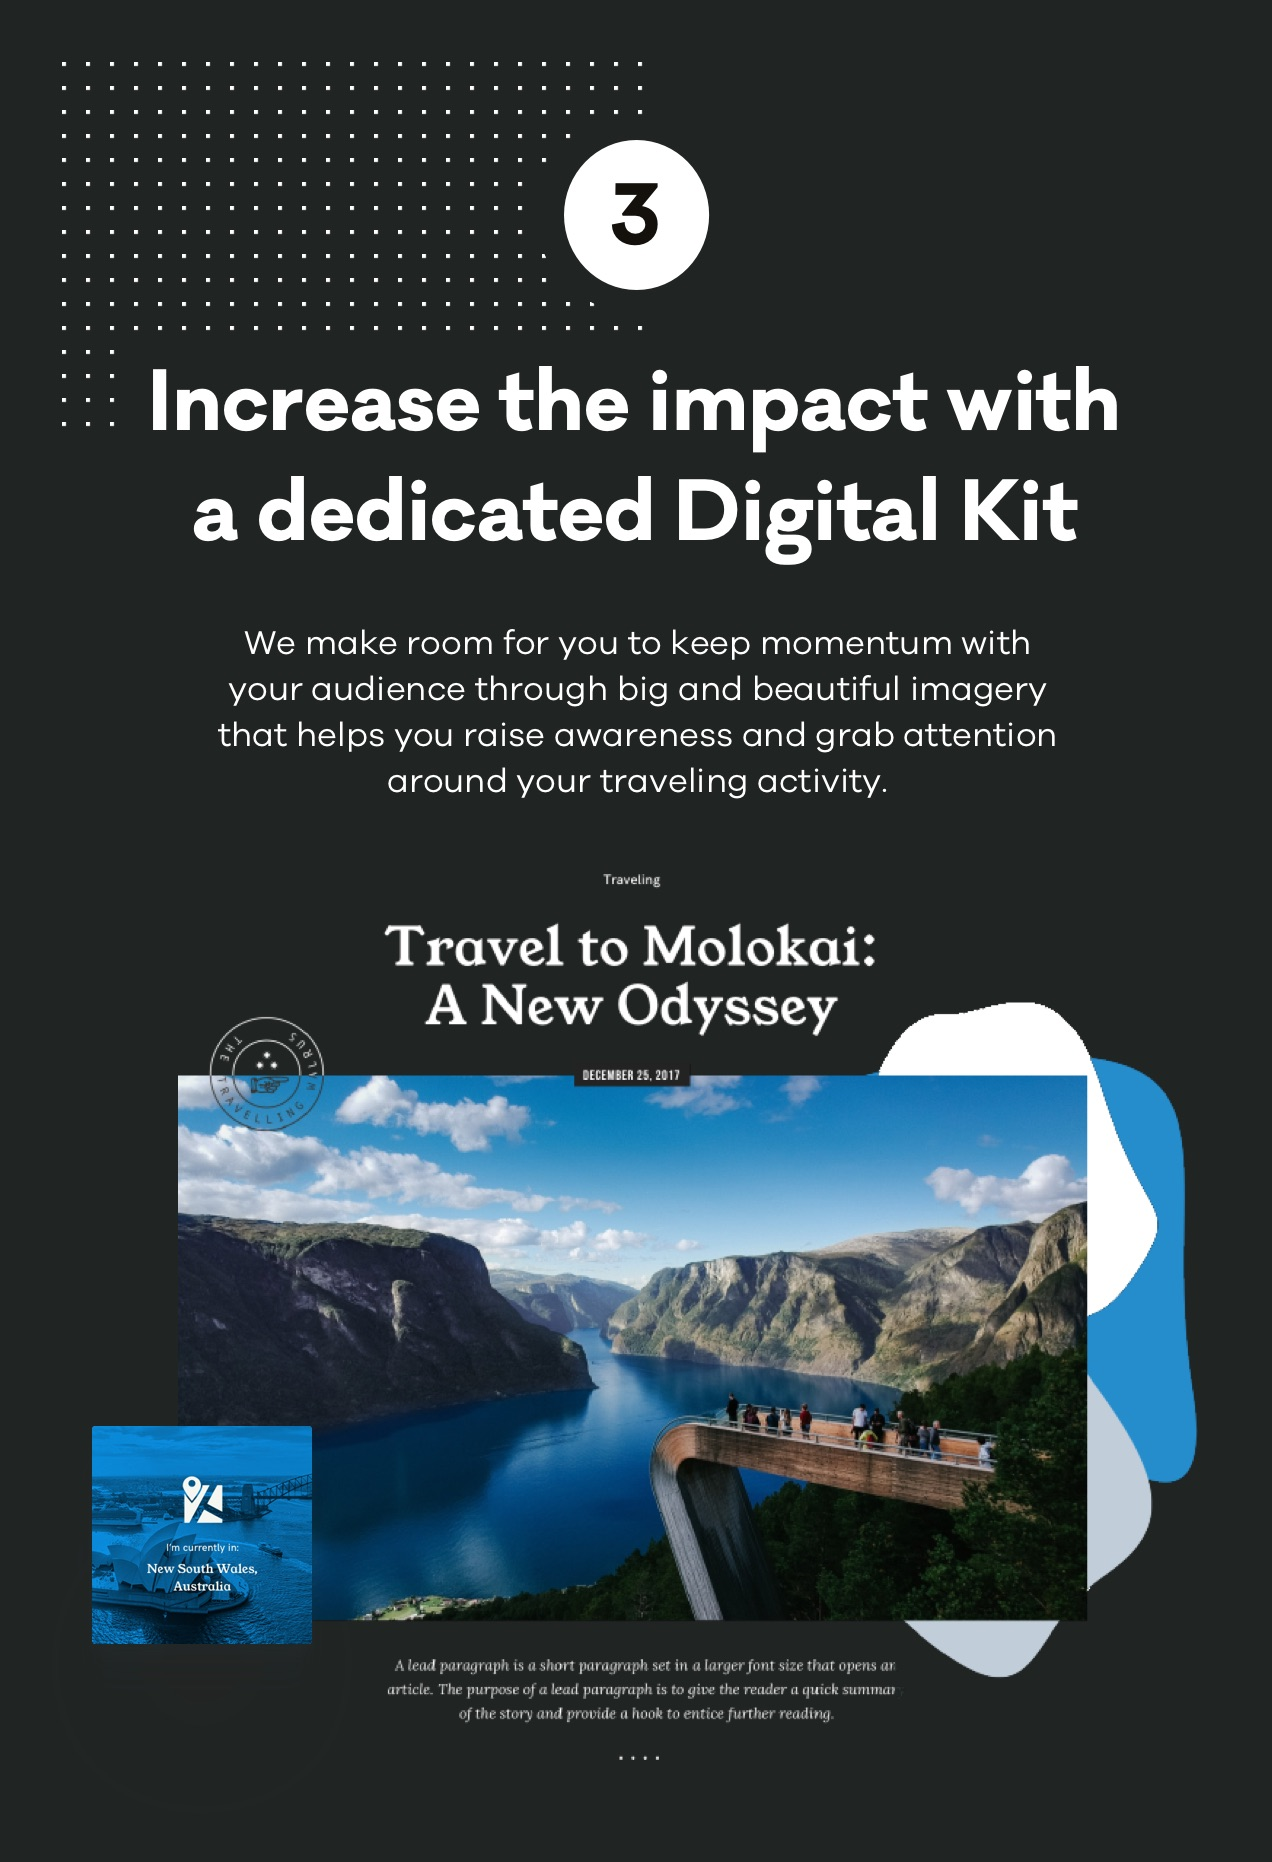 Increase the impact with a dedicated Digital Kit